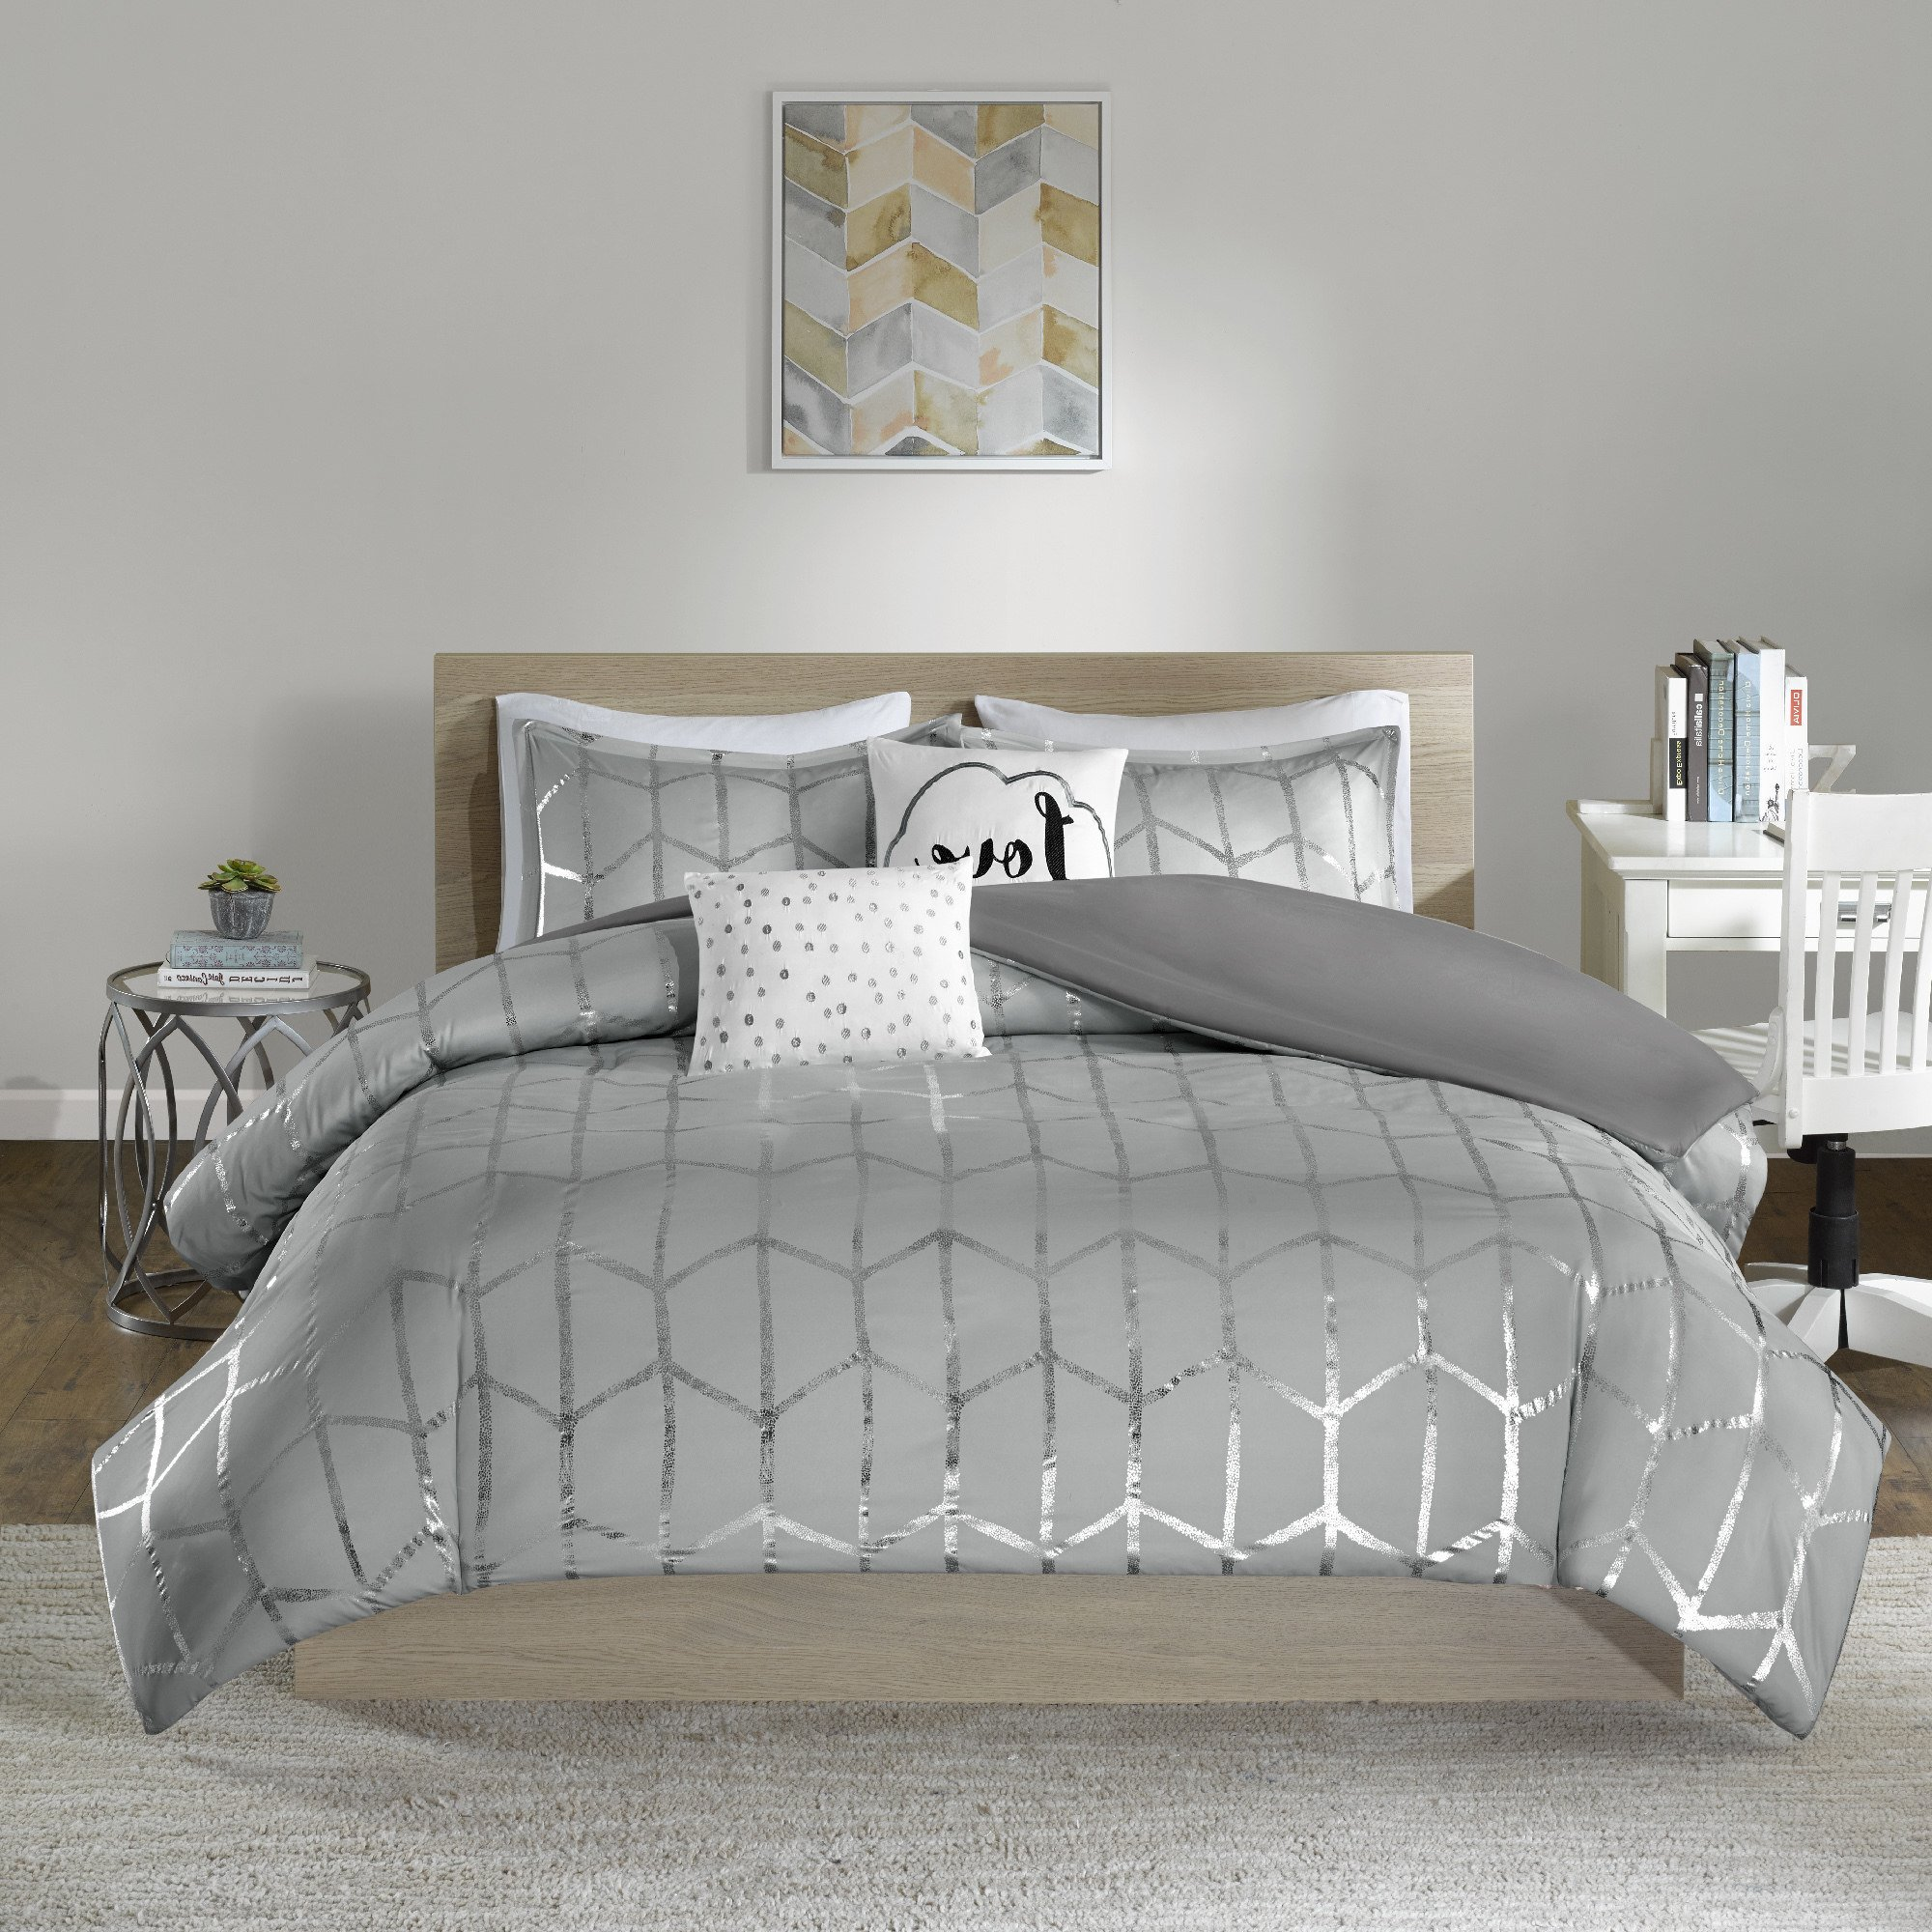 N2 5 Piece Light Grey Silver Geometric King/Cal King Duvet Cover Set, Soft Gray Metallic Themed Bedding Hexagon Chic Stylish Glam Trendy Casual Modern Love Polka Dot, Microfiber, Polyester